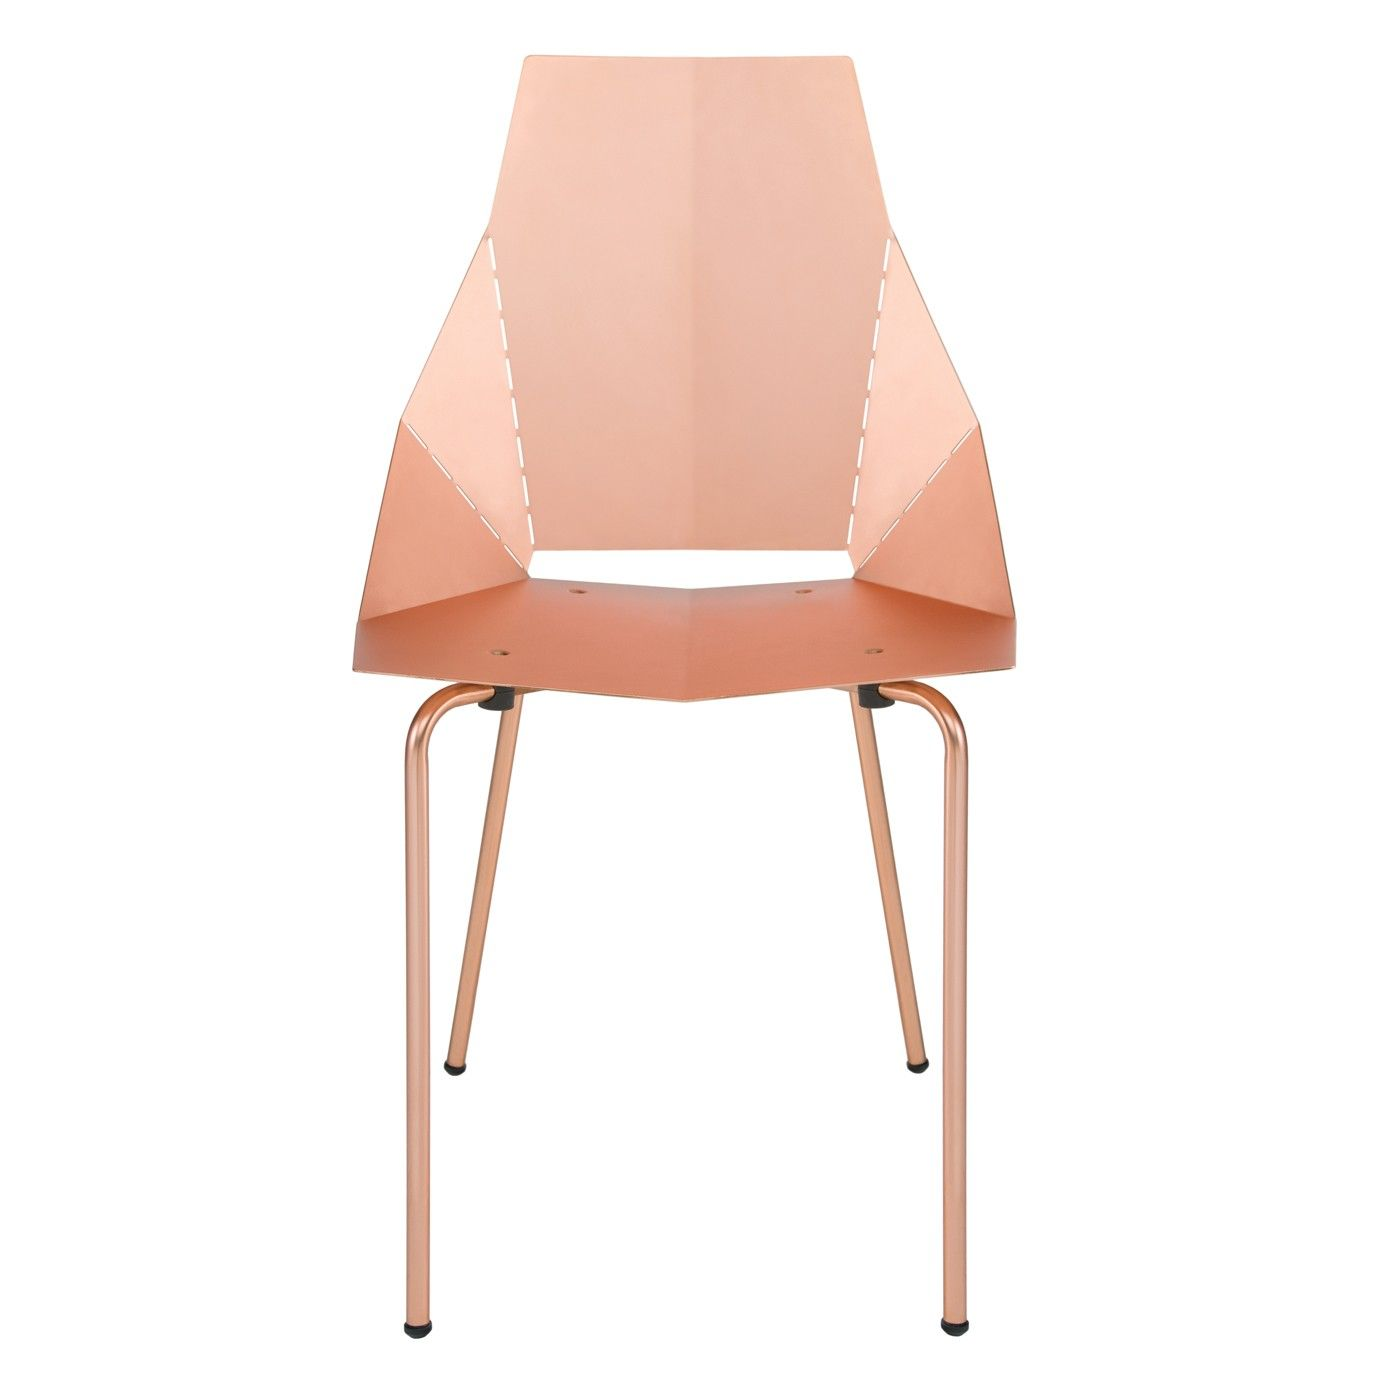 Copper Real Good Chair from bludot | home is where the ...